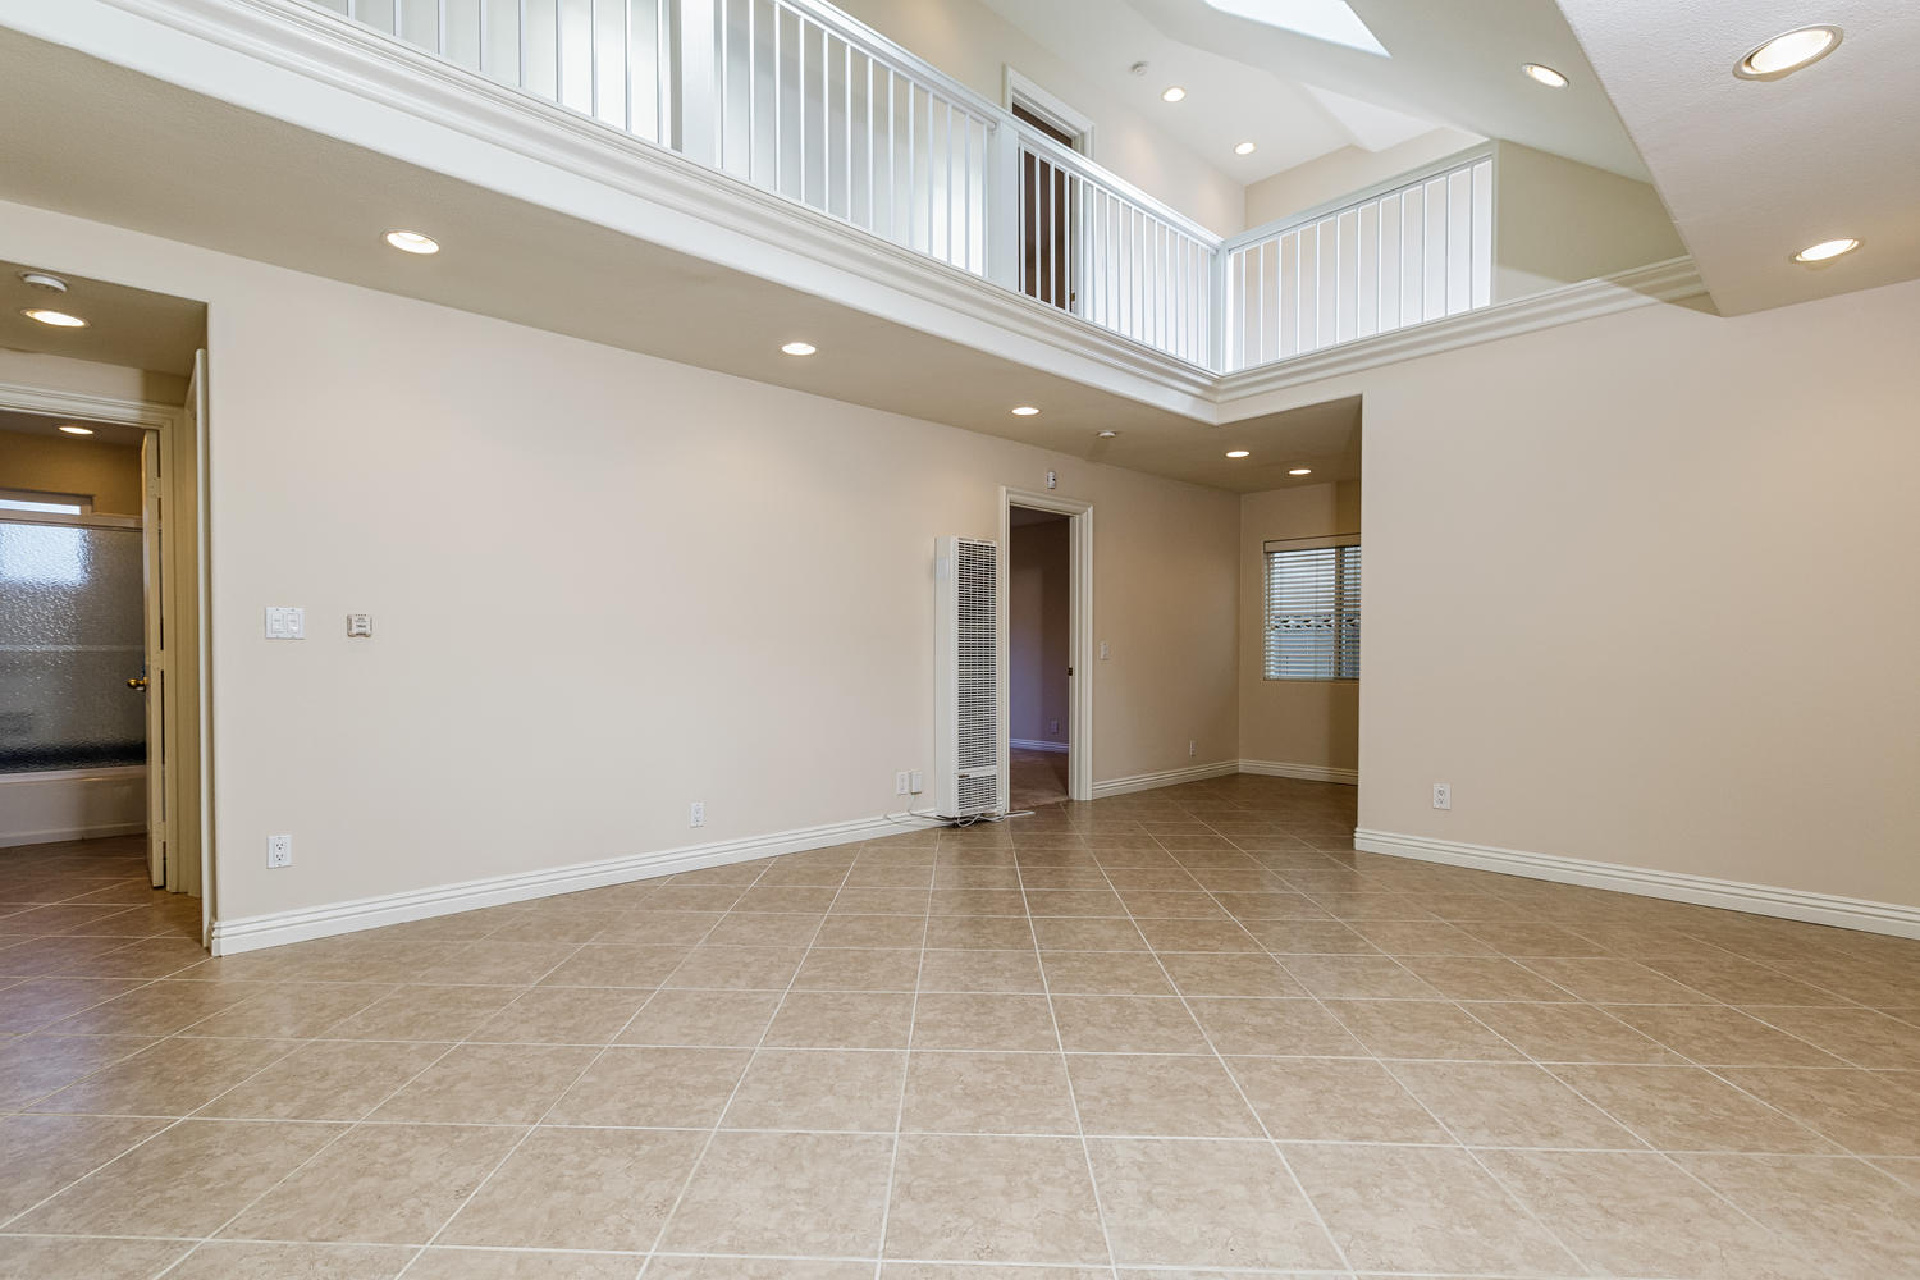 http://www.addressrealestate.com/media/images/blogs/38/2/b_4-1408-ocean-dr-oxnard-ca-93035-mls-size-002-10-living-area-1500x1000-72dpi.jpg